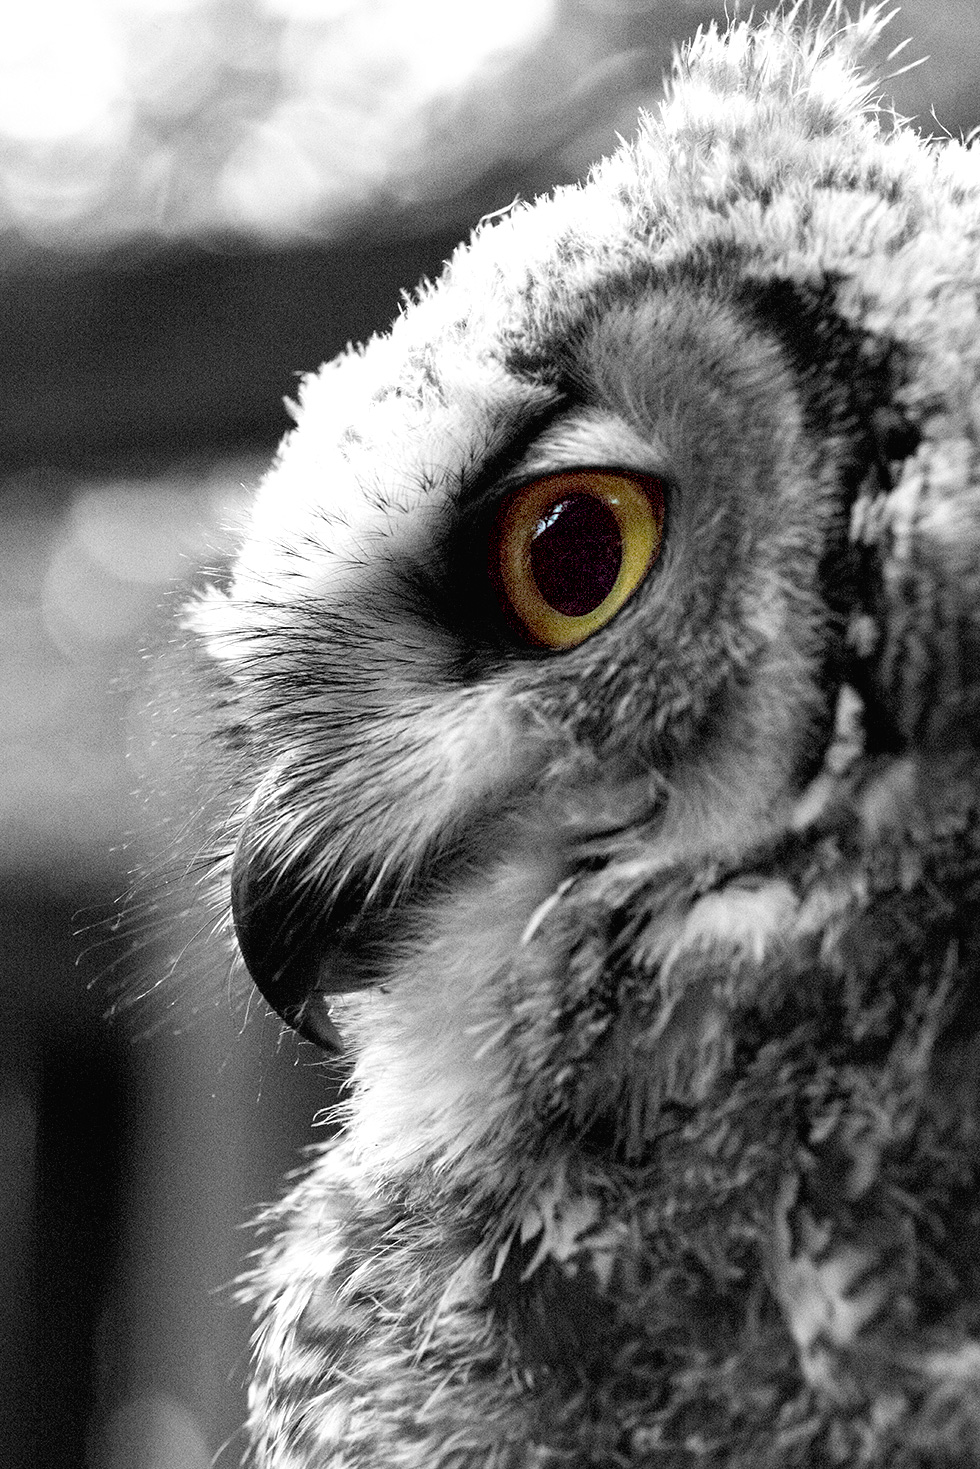 Black and white portrait of a baby great horned owl